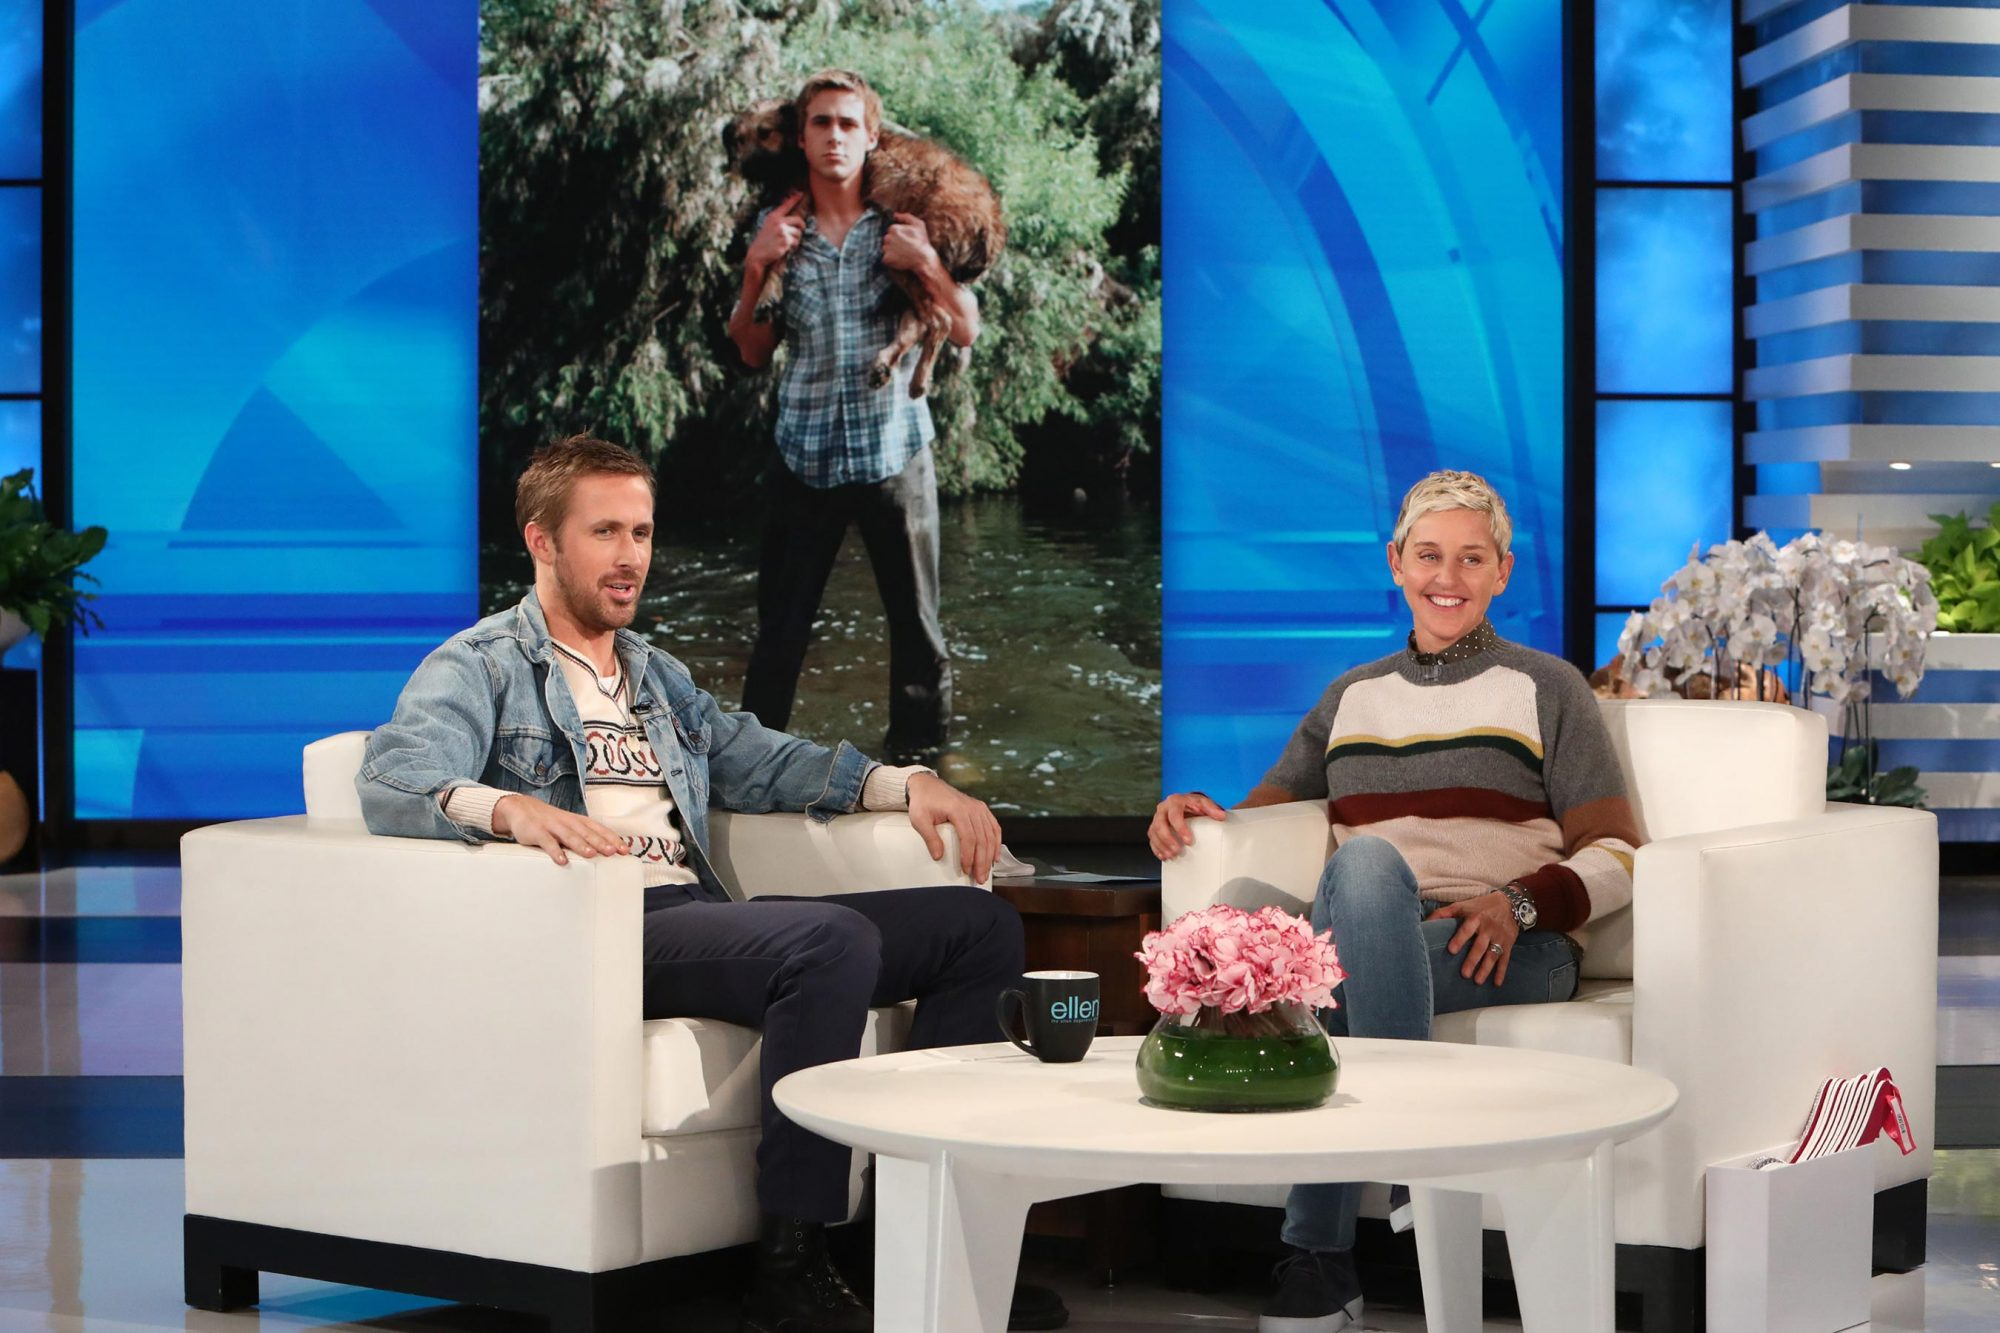 Ryan Gosling and his dog, George: A love story